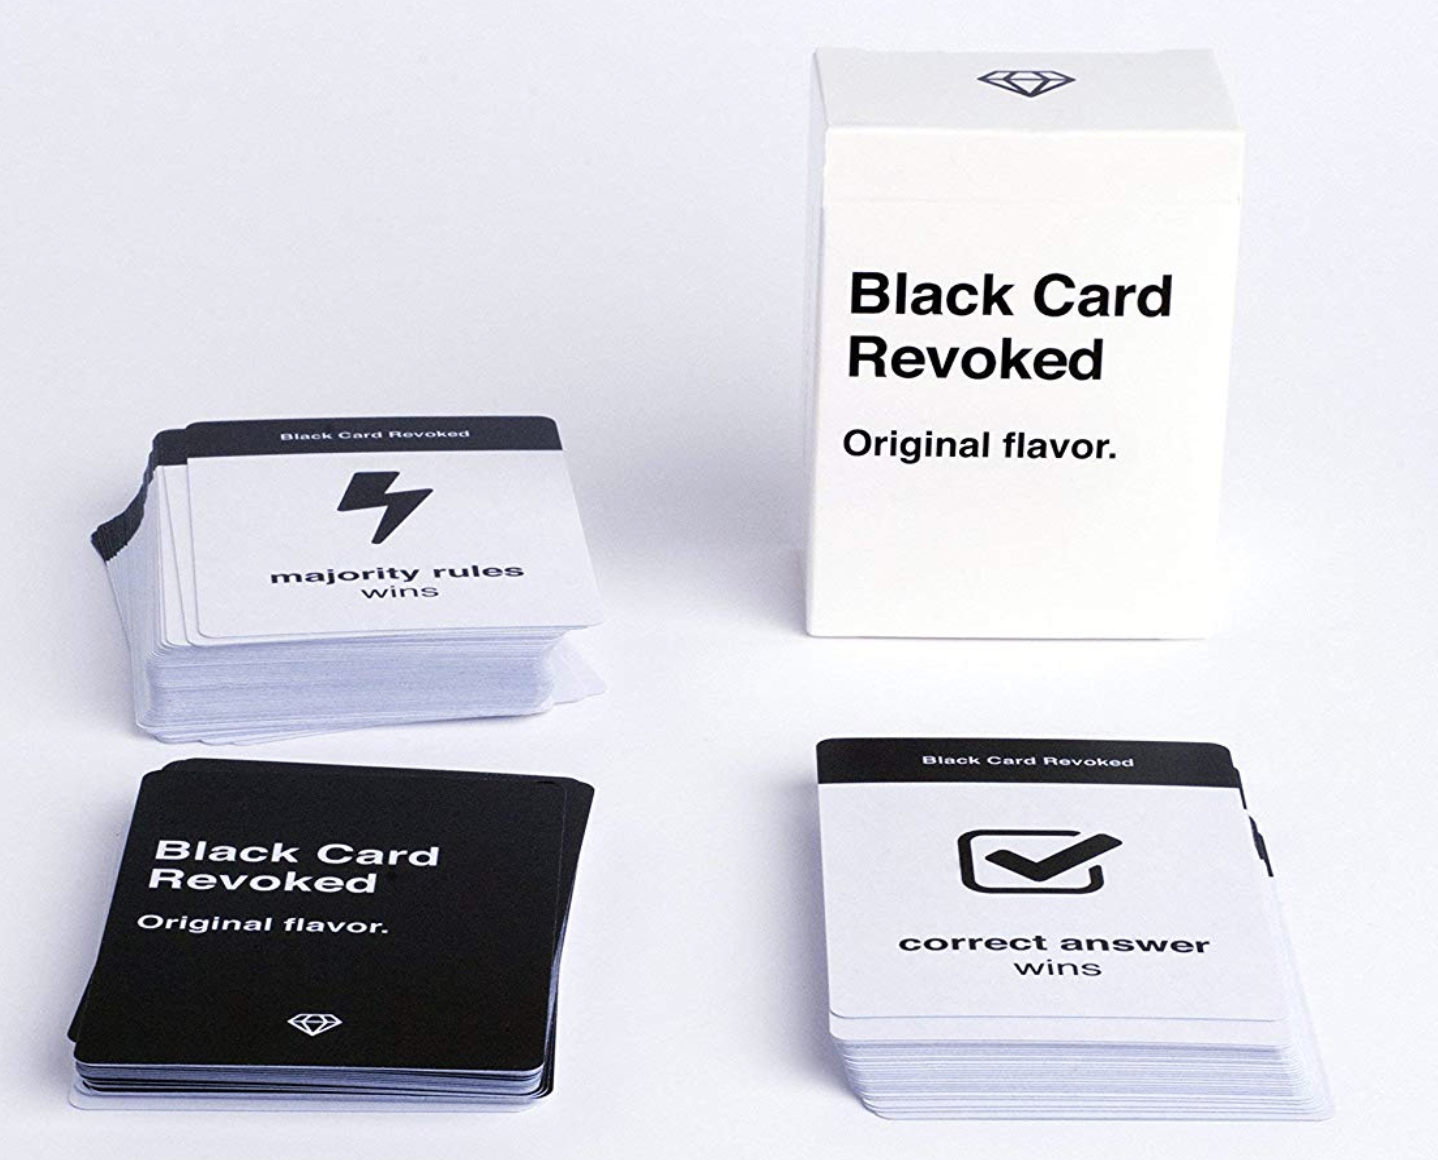 Black Card RevokedBlack Card Revoked